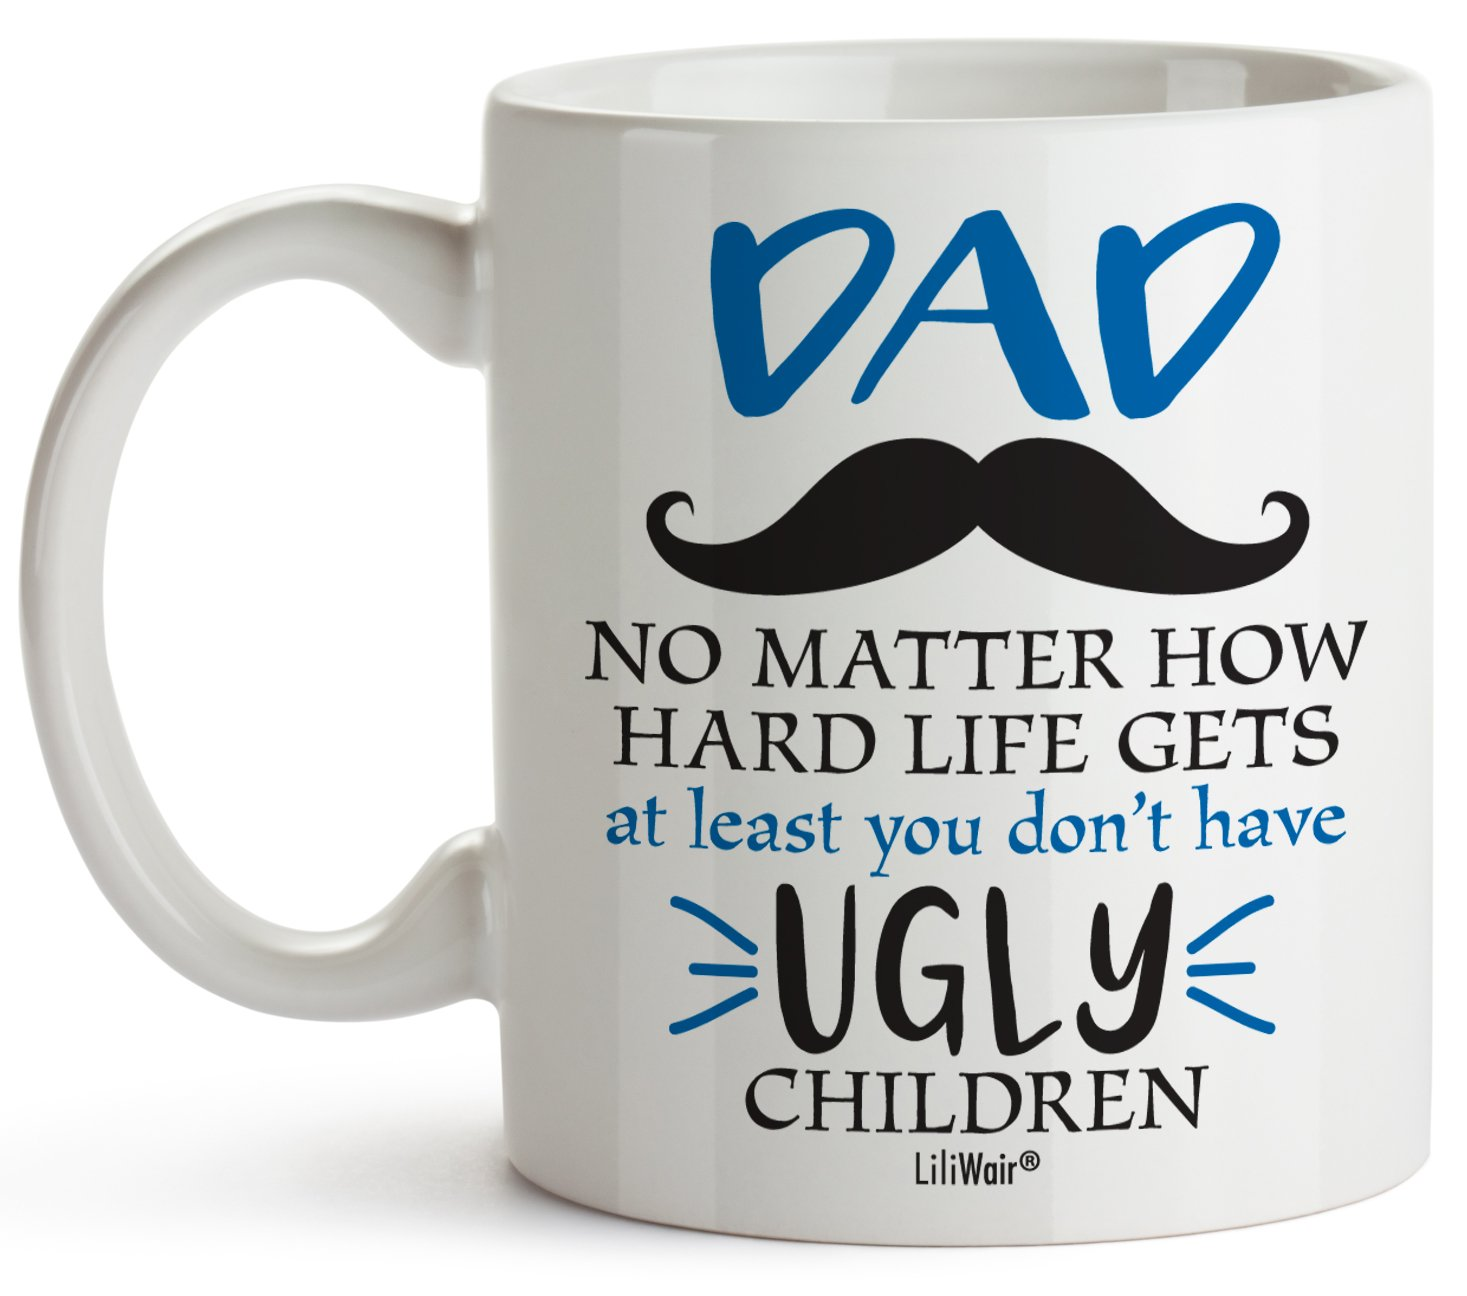 Gifts For Dad From Daughter Son Christmas Birthday Gift Coffee Mug Best Cool Happy Funny First Mugs Father Dads Daddy Stepdad Stepfather Bonus Step